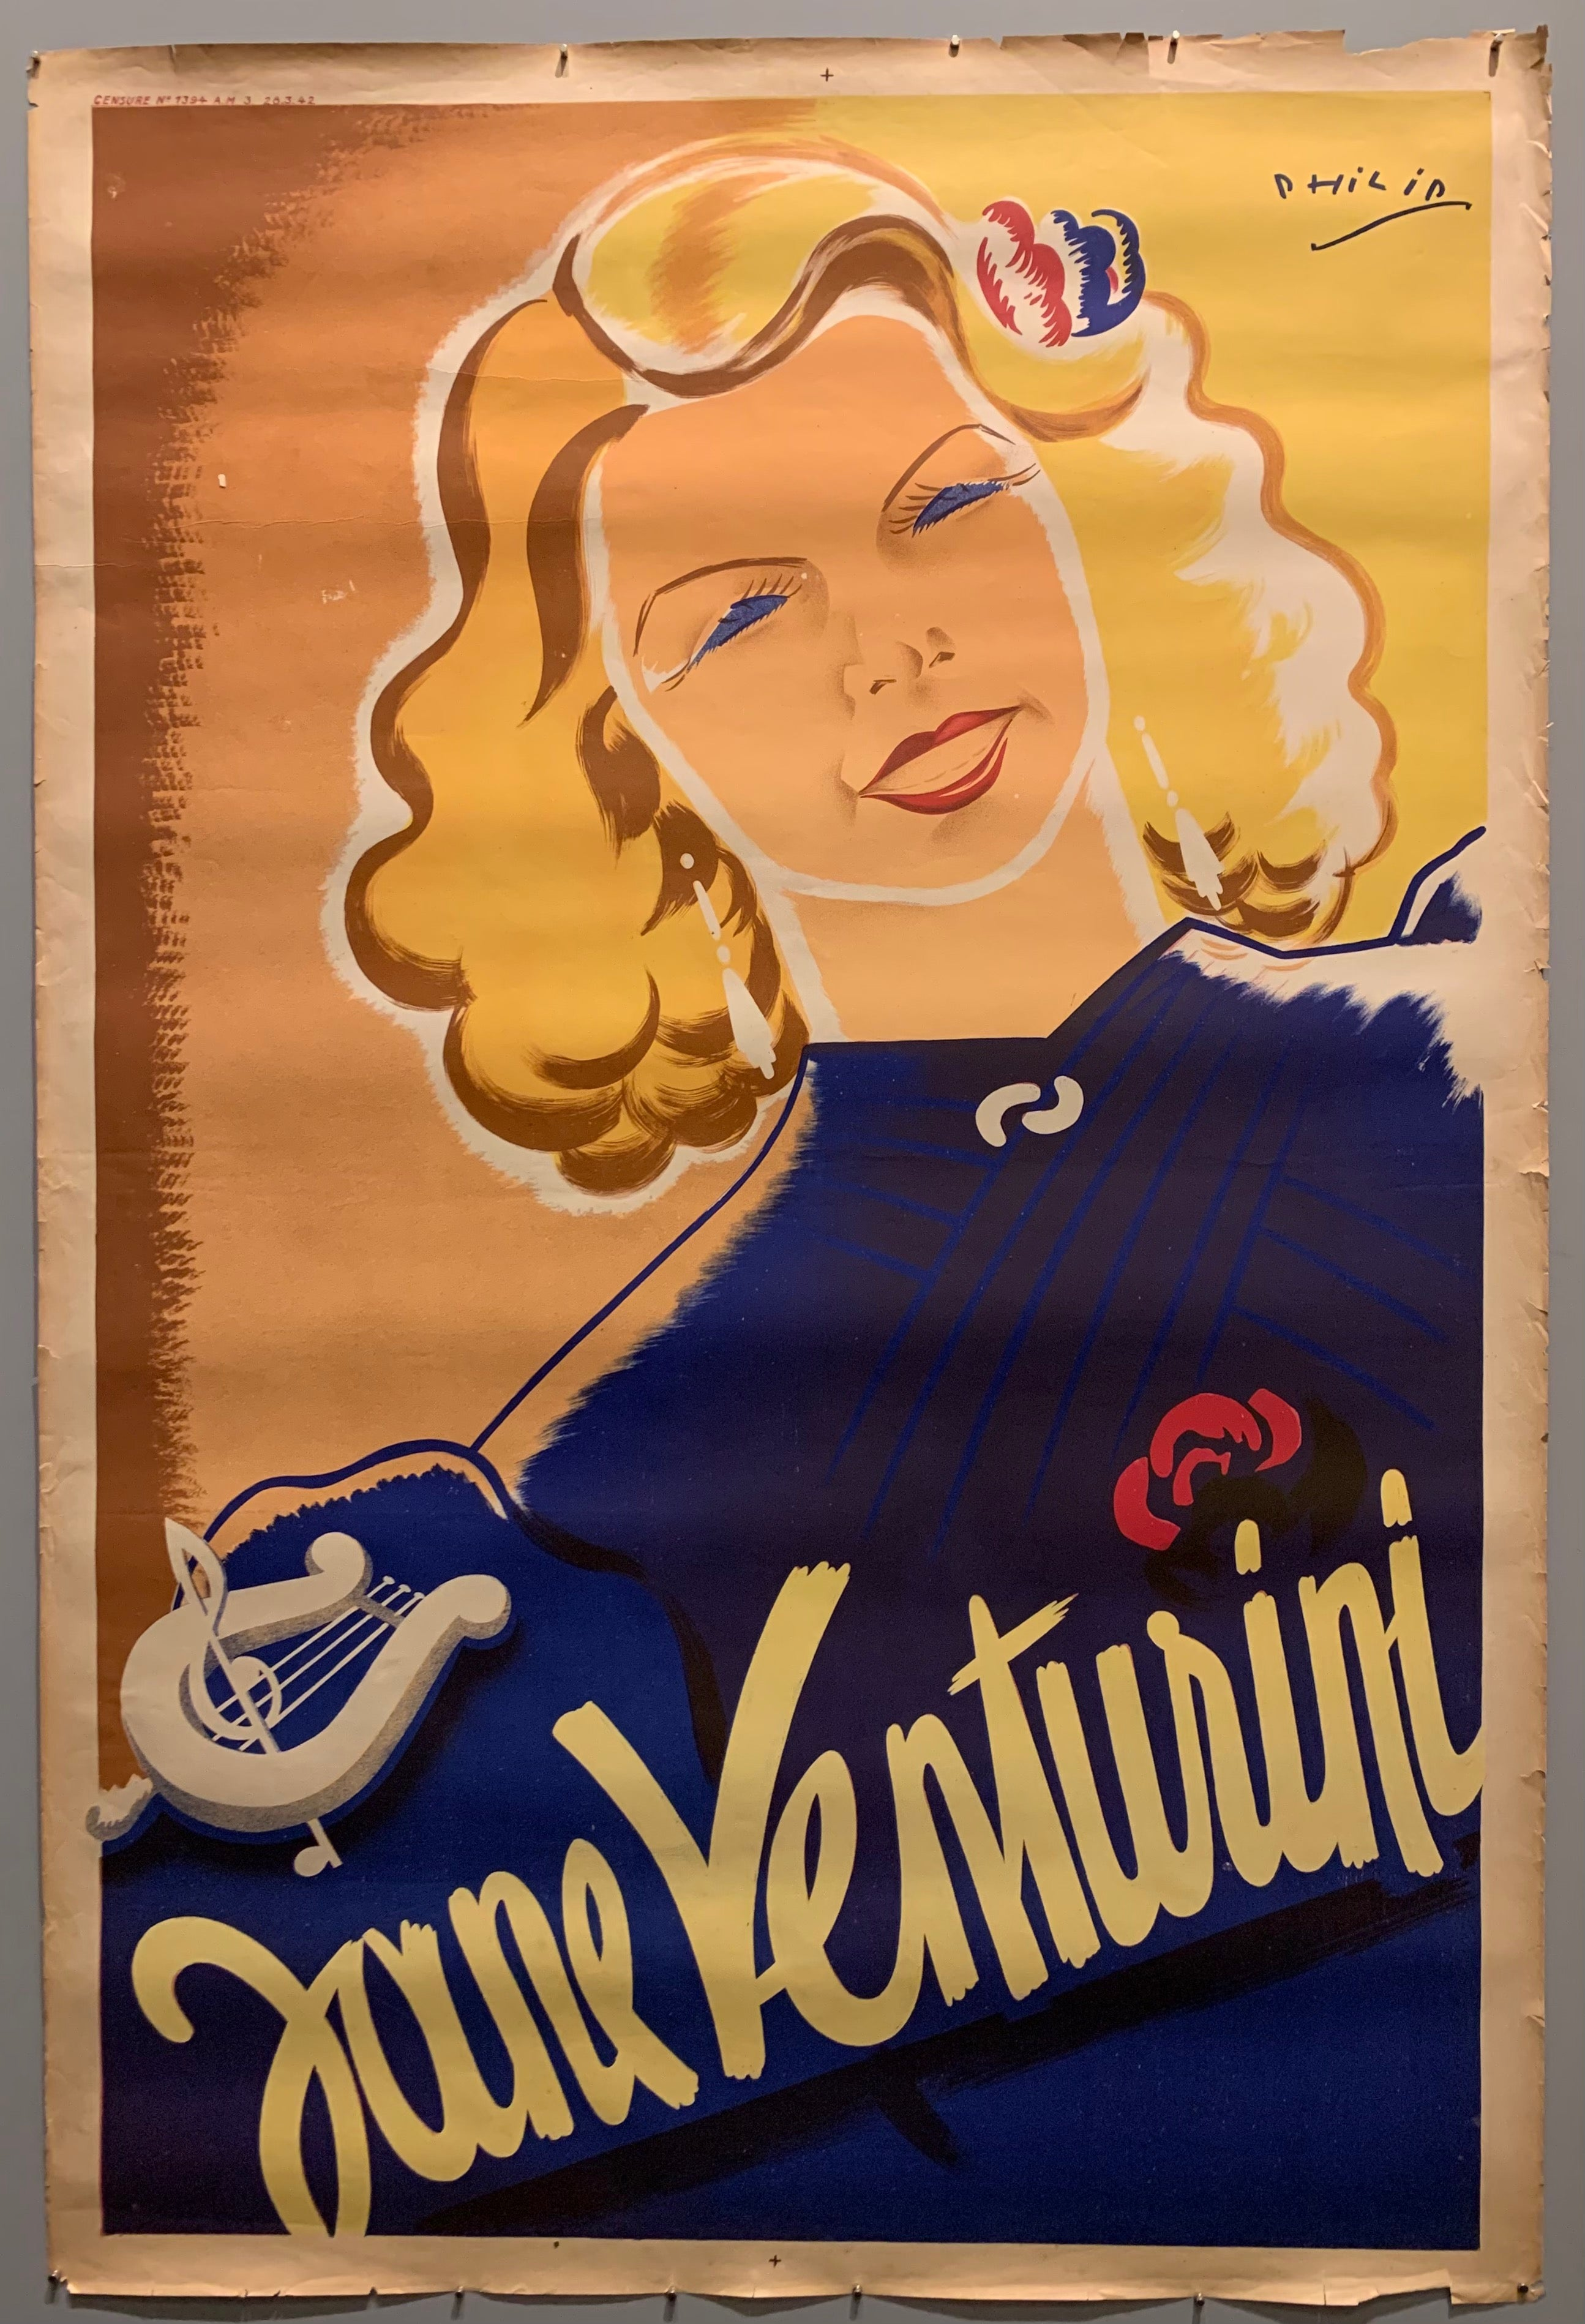 Poster of a blonde woman in a blue dress